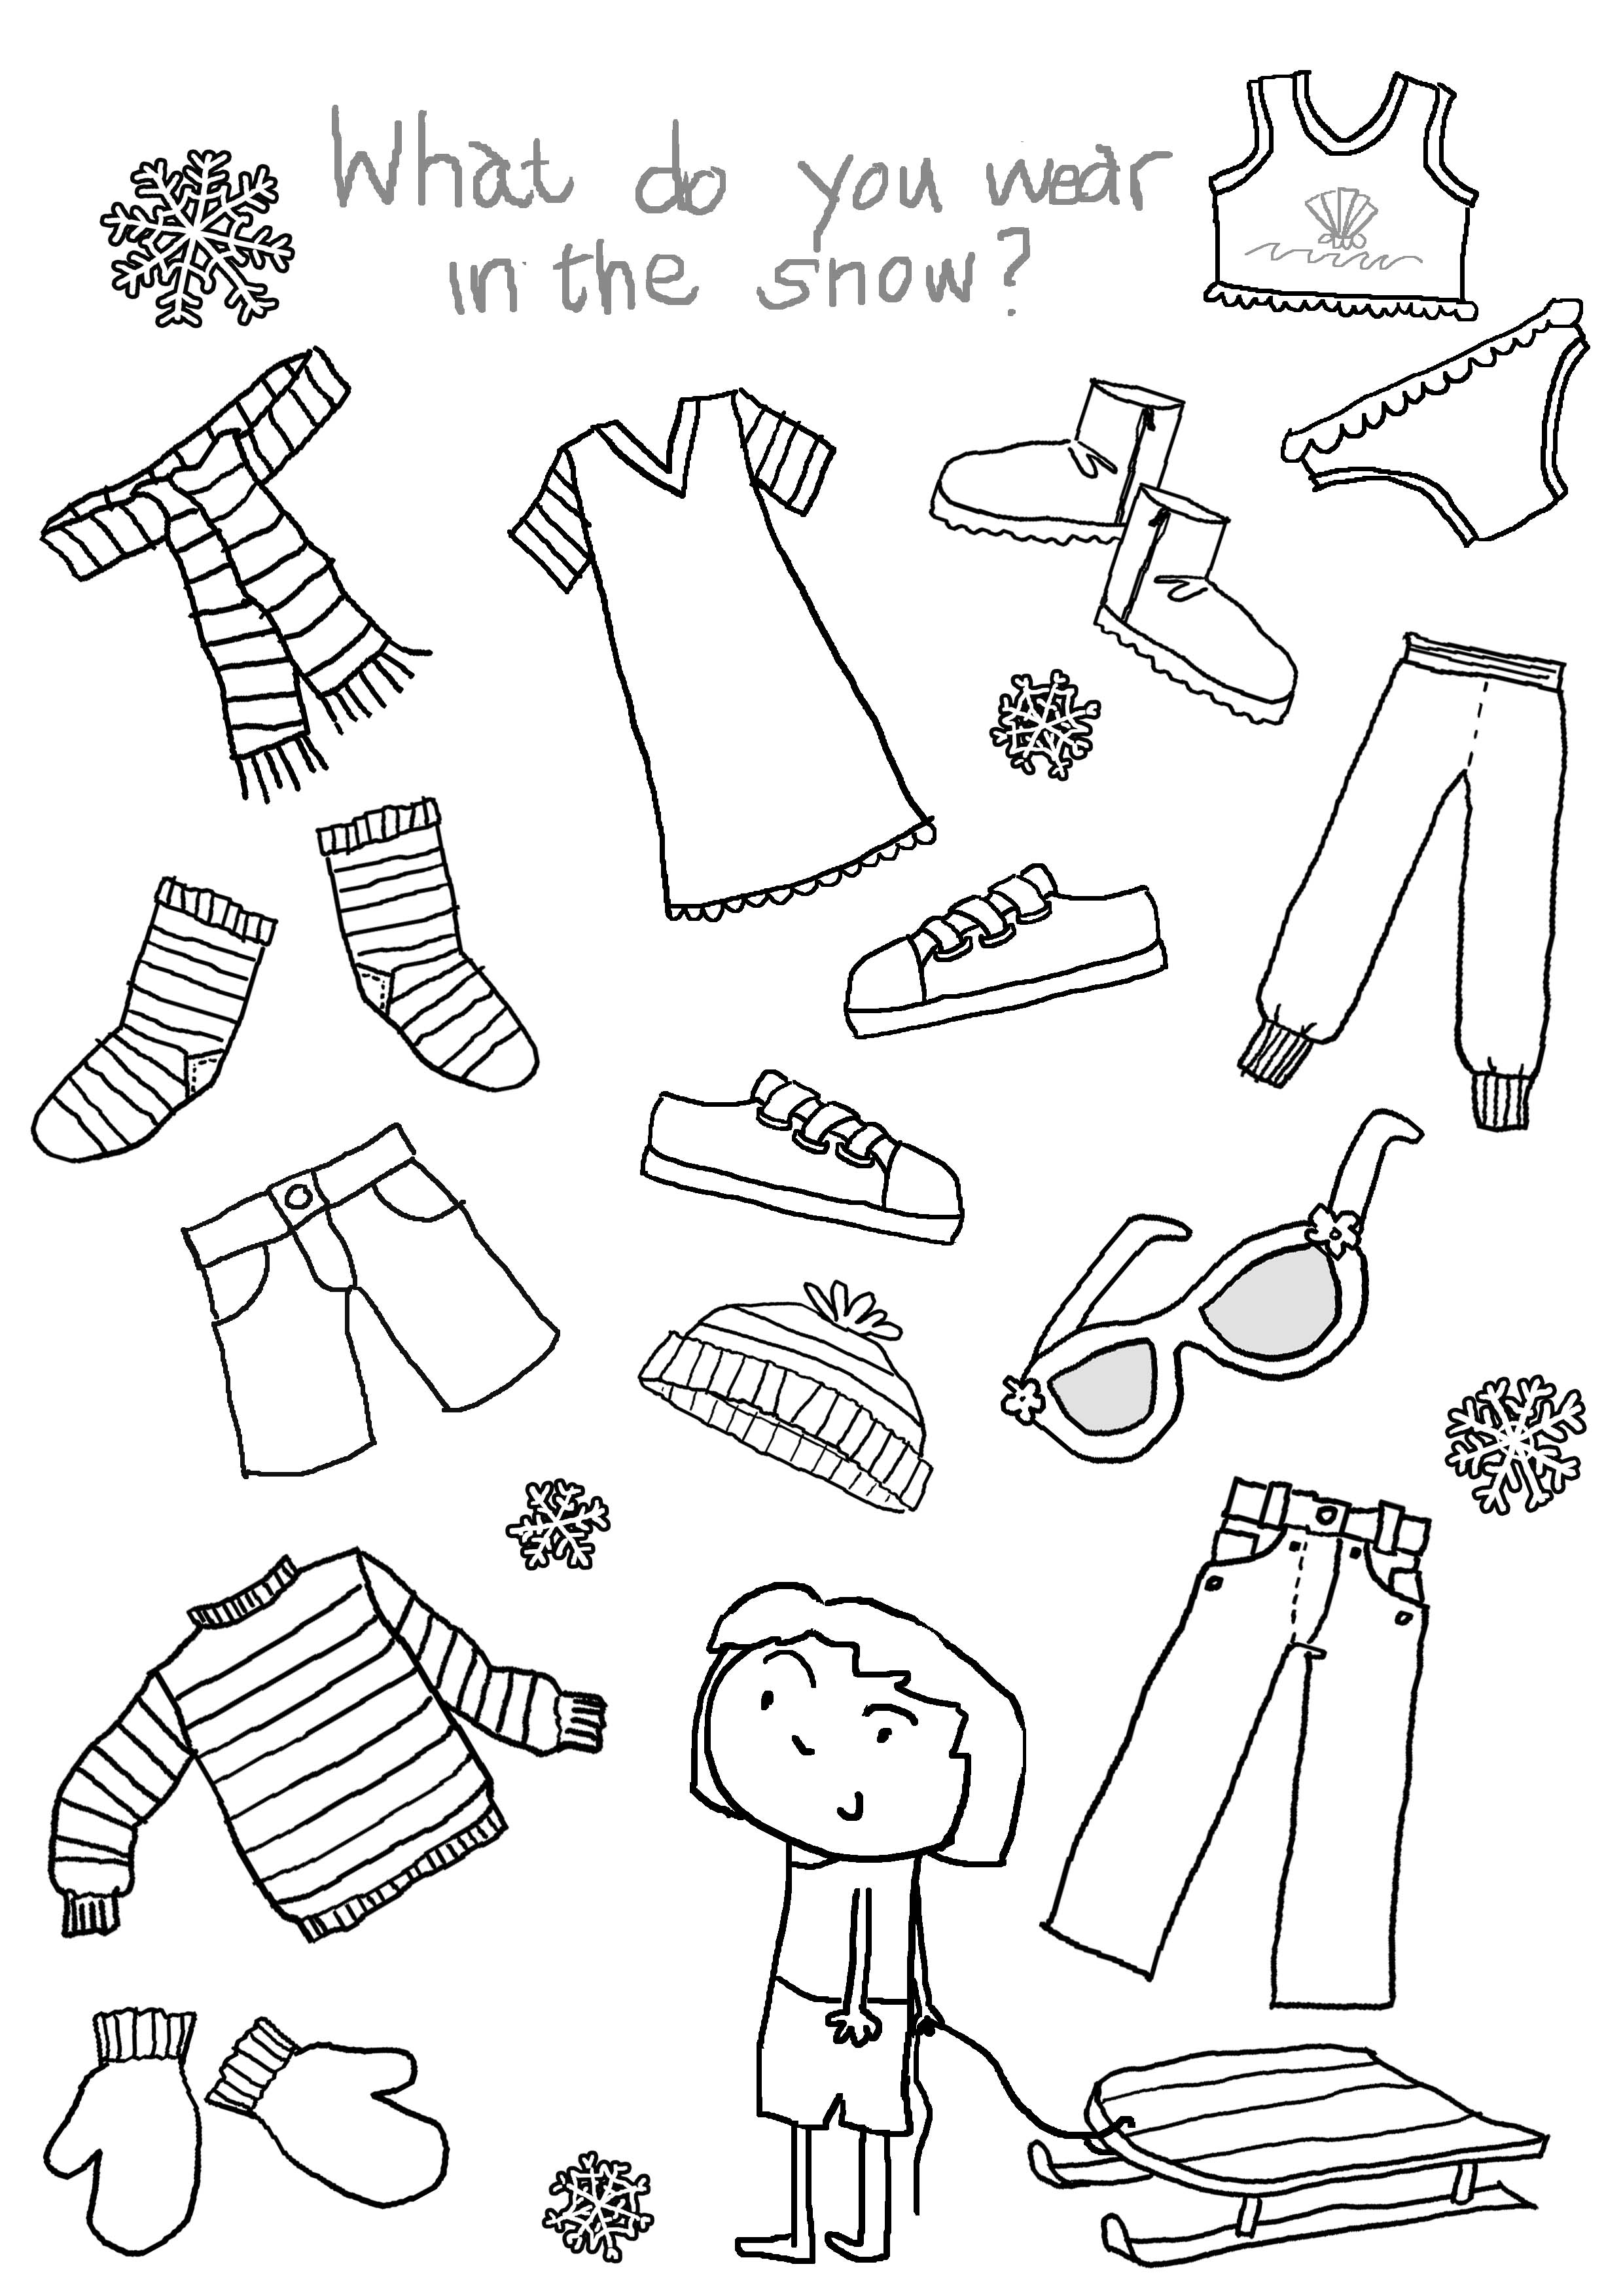 clothing coloring pages winter clothes coloring pages to download and print for free clothing coloring pages